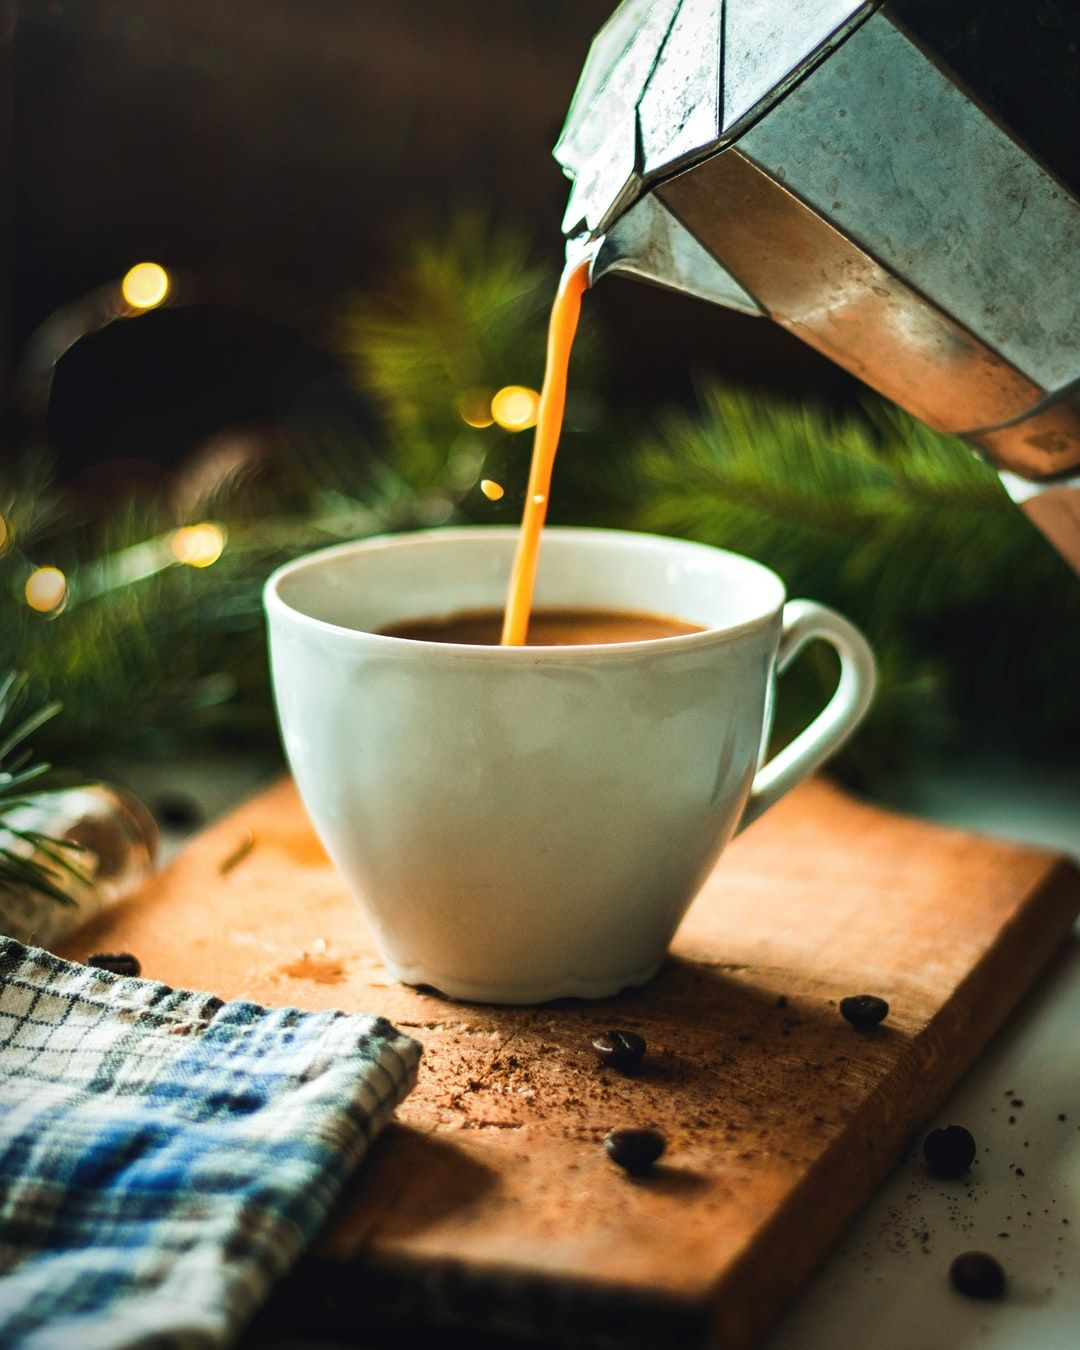 White Ceramic Cup With Brown Liquid Photo Free Coffee Cup Image On Unsplash Wallpaper Coffee Coffee Bean Art Coffee Cup Images